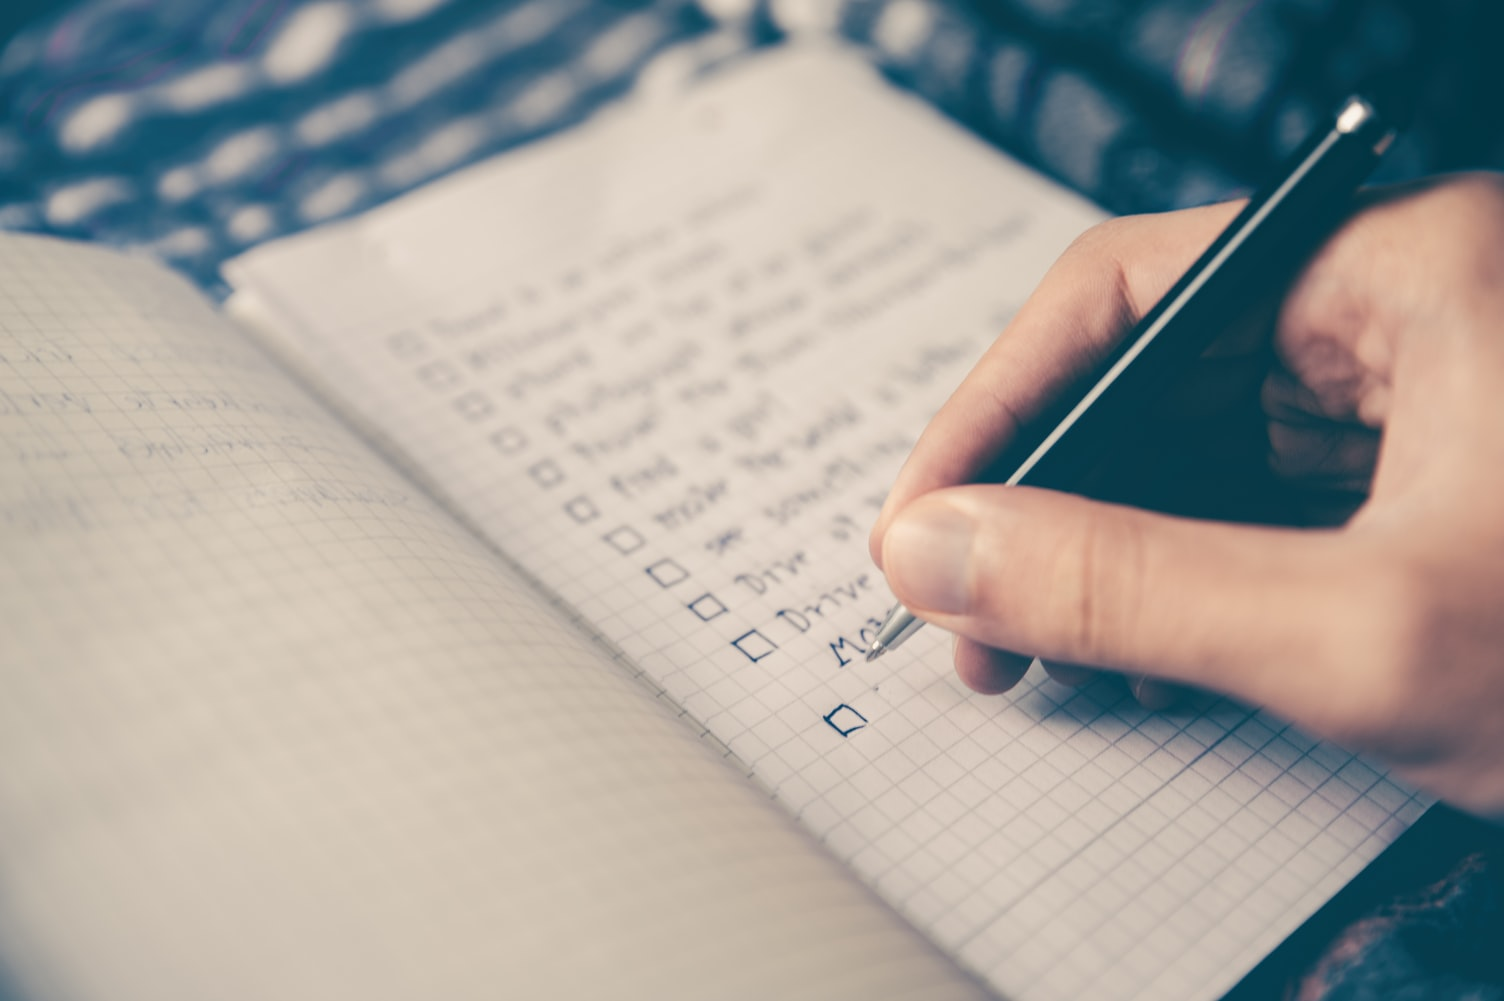 Checklist of Compliance Responsibilities for Every Marketing Role